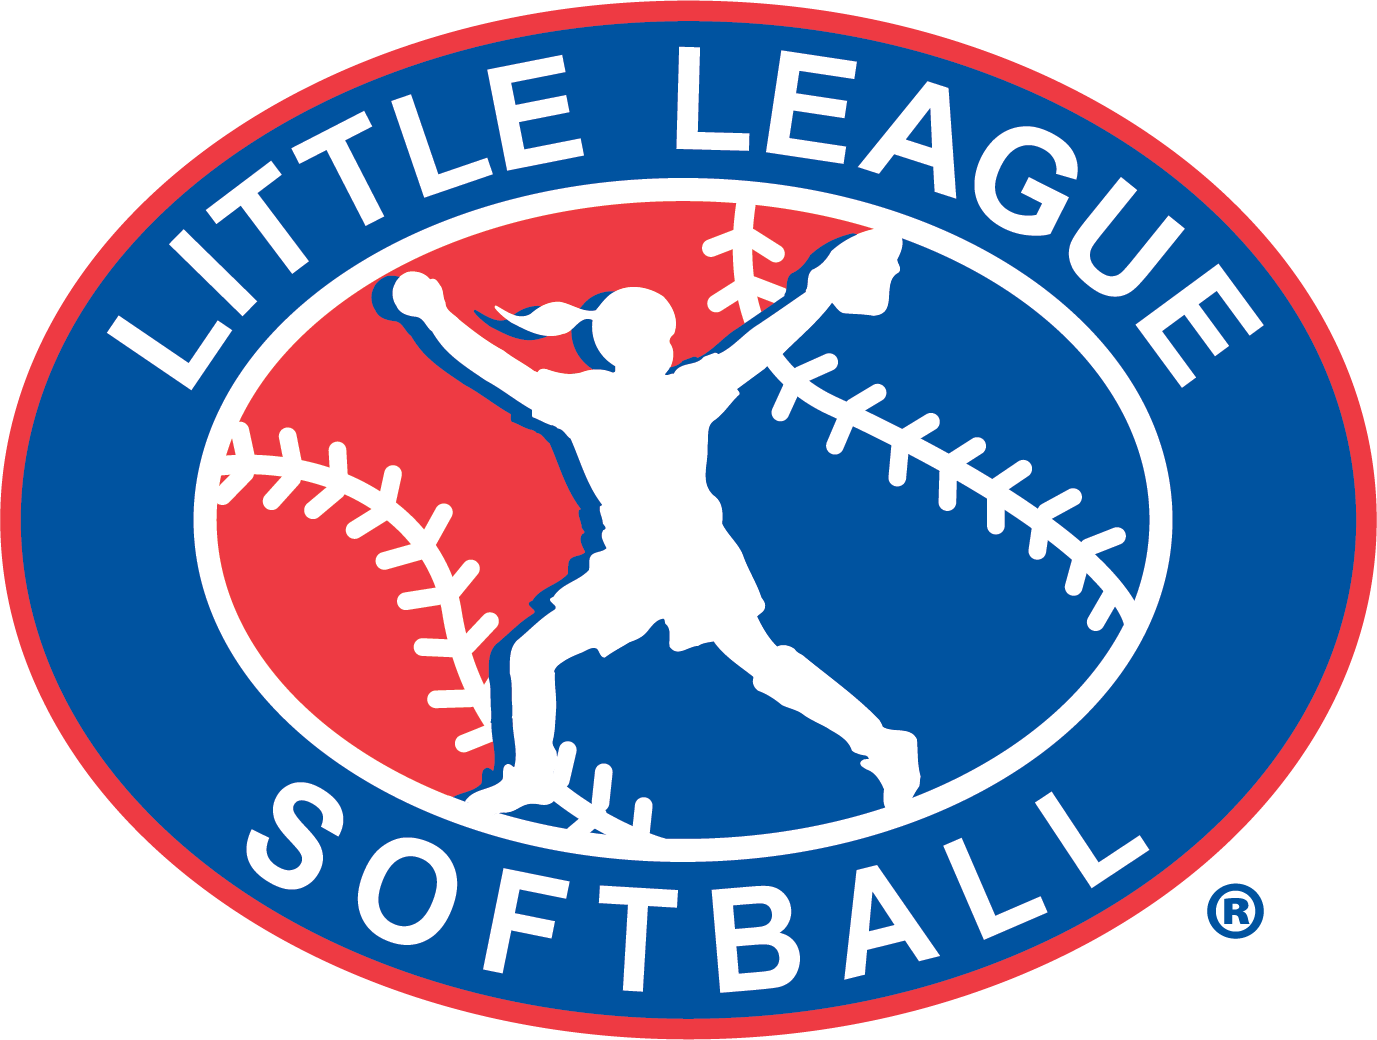 Little League Softeball